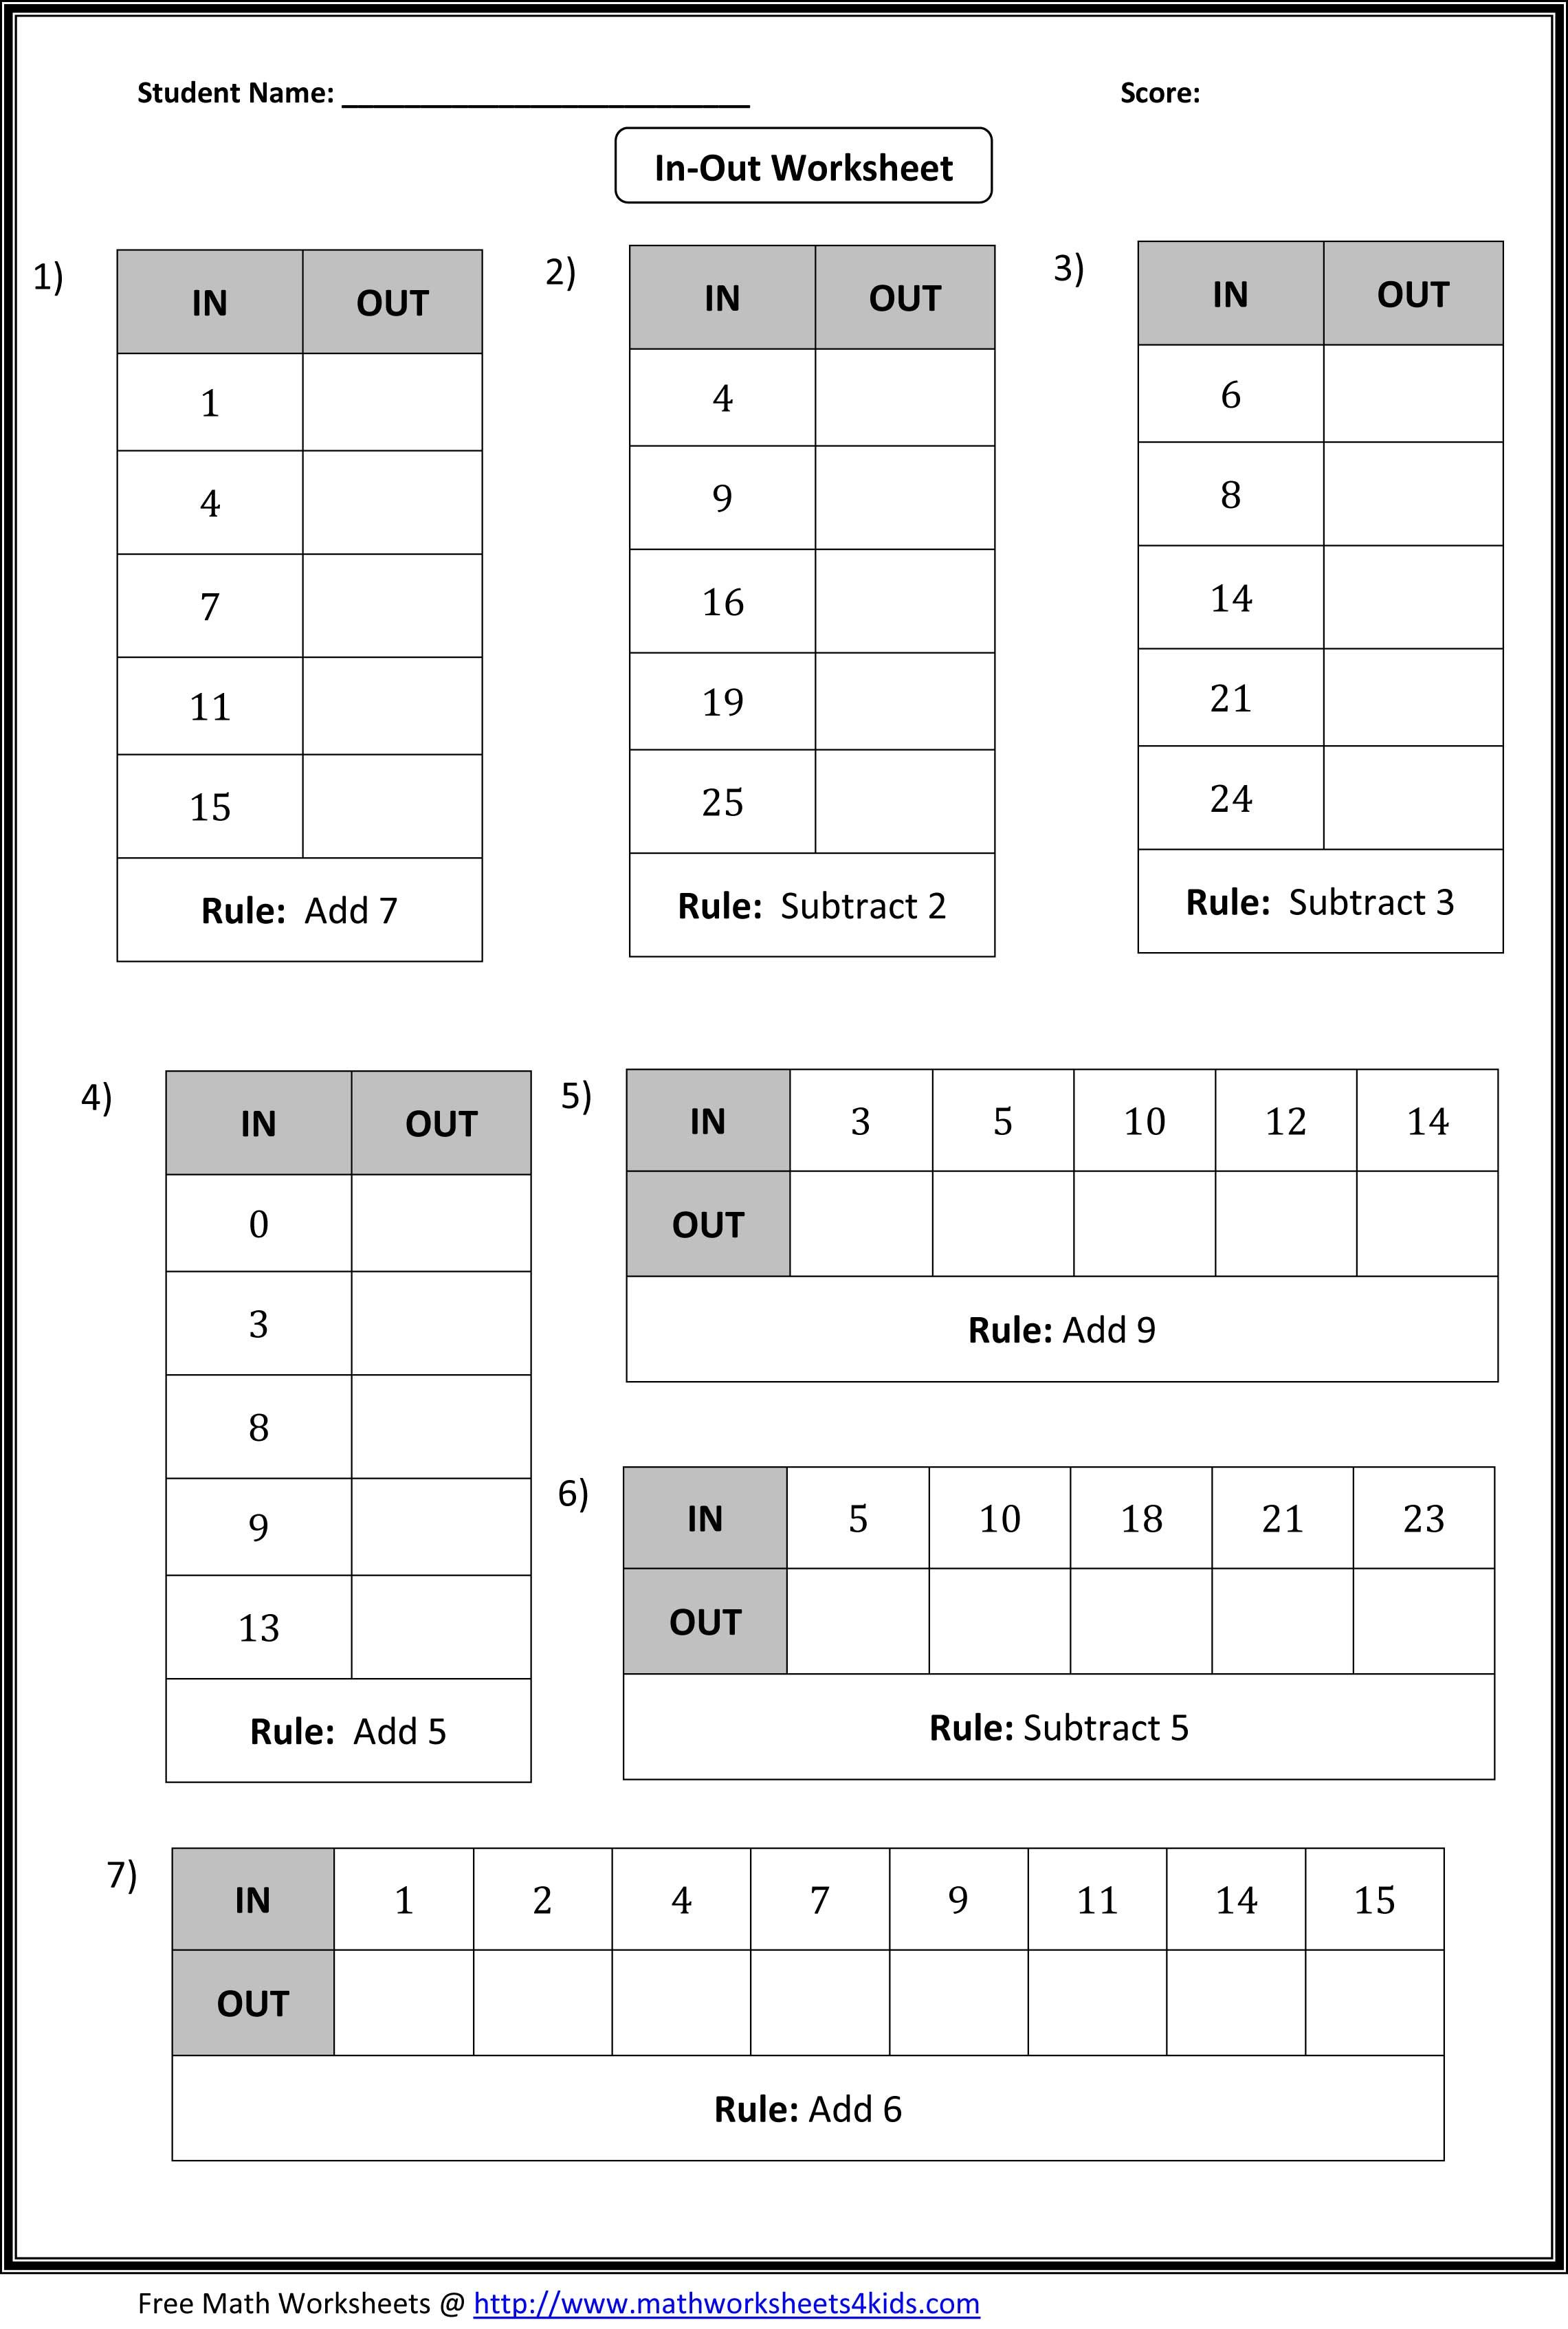 Uncategorized Input Output Math Worksheets in out boxes worksheets include addition subtraction multiplication and division of whole